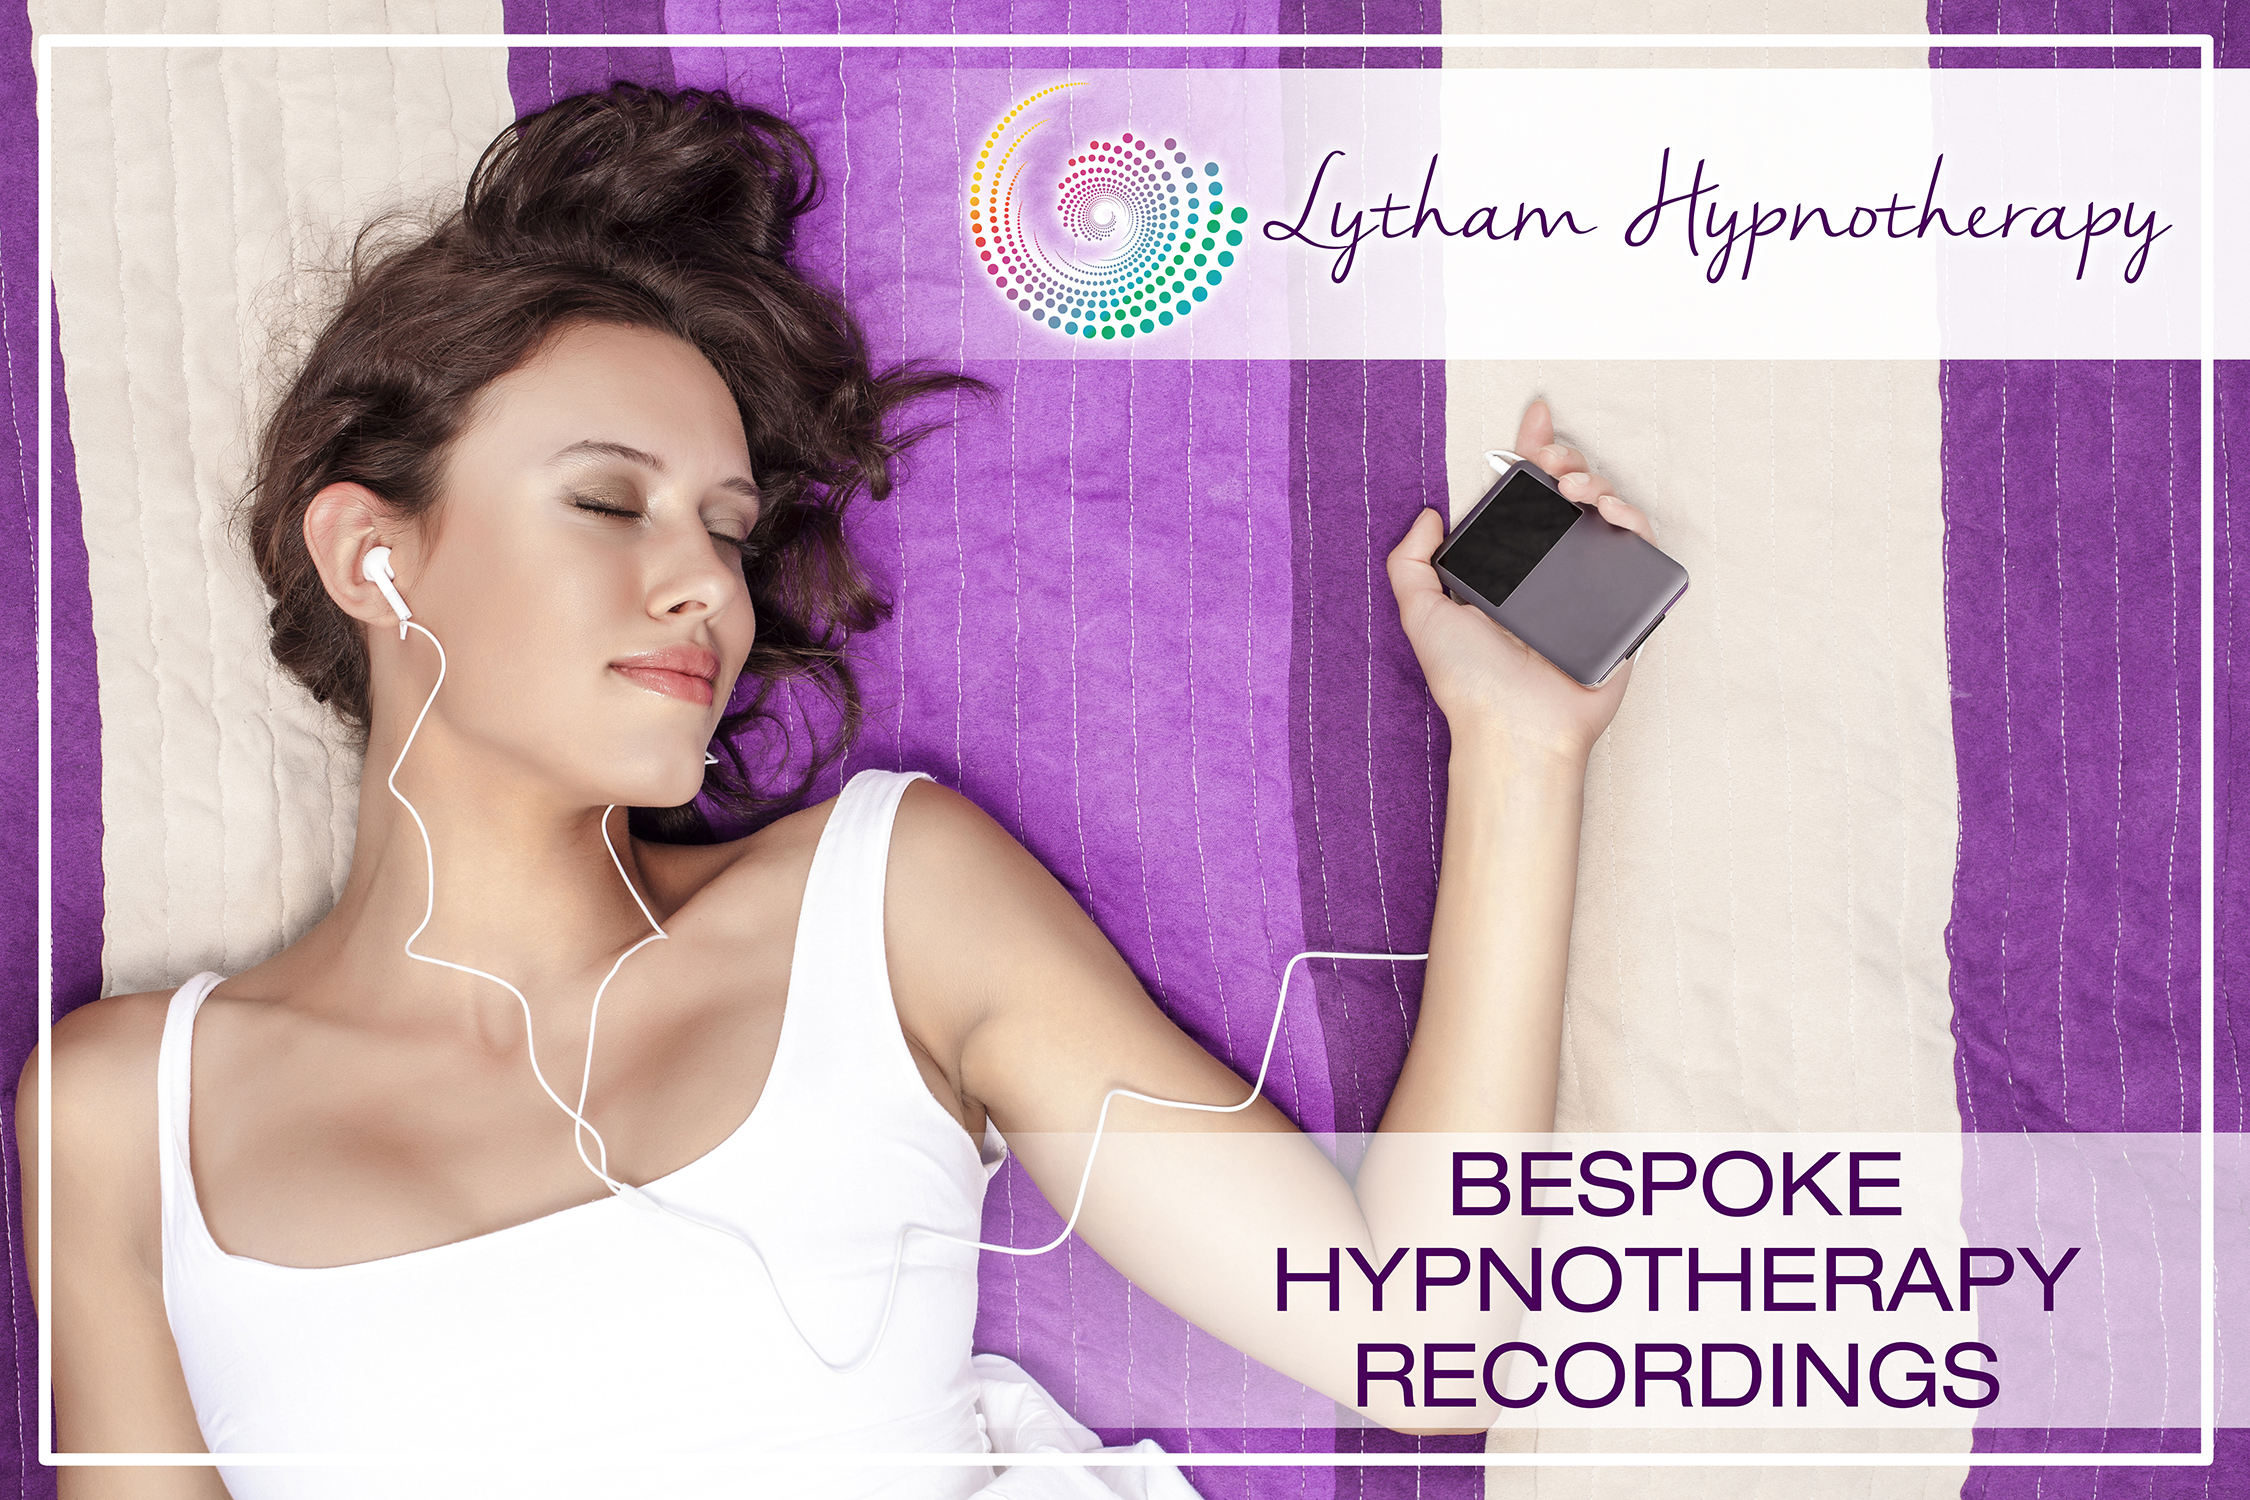 Bespoke Hypnotherapy Recordings